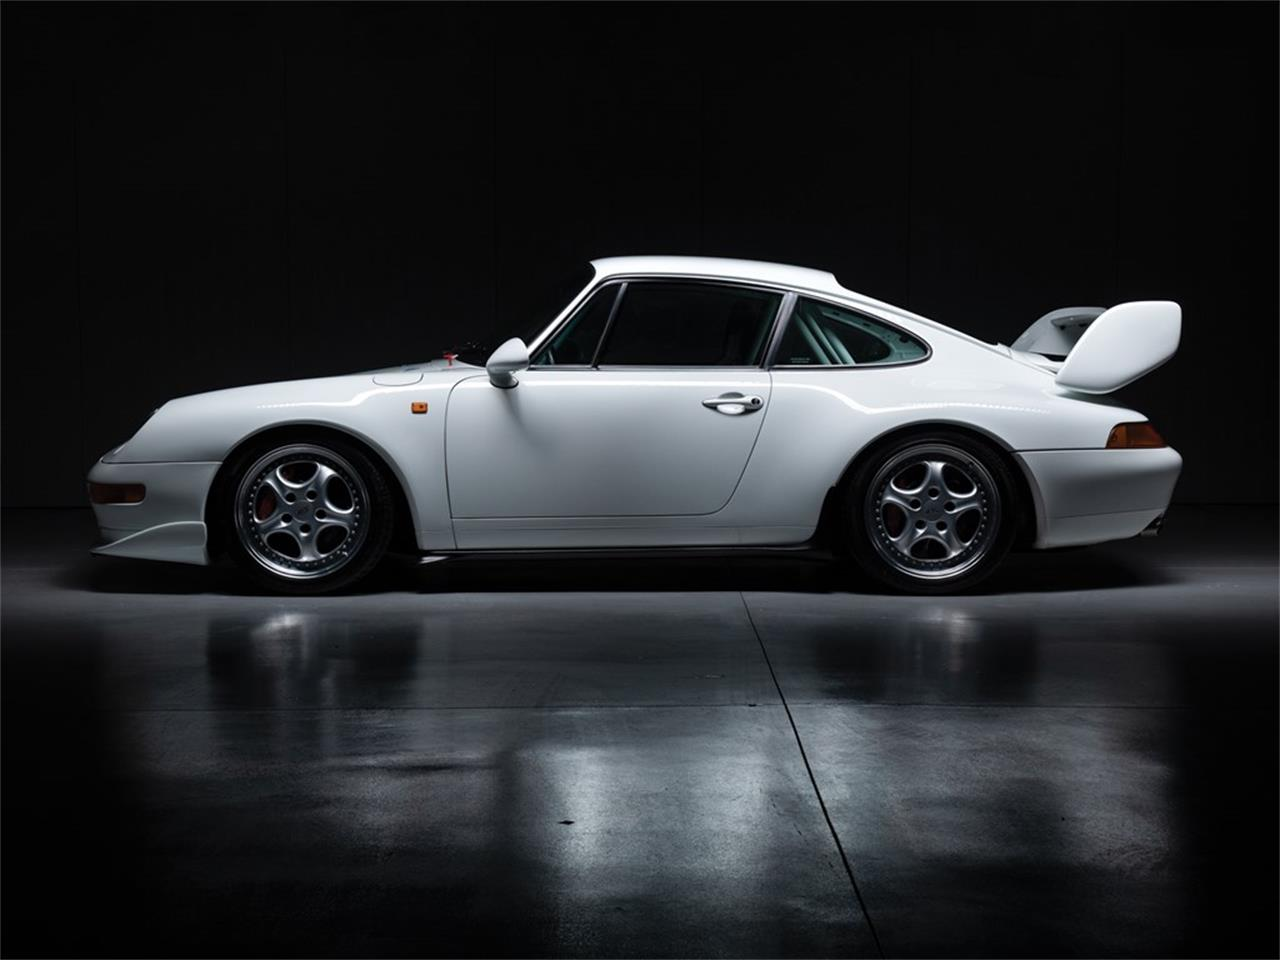 1996 Porsche 911 Carrera RS (CC-1309438) for sale in Paris, France